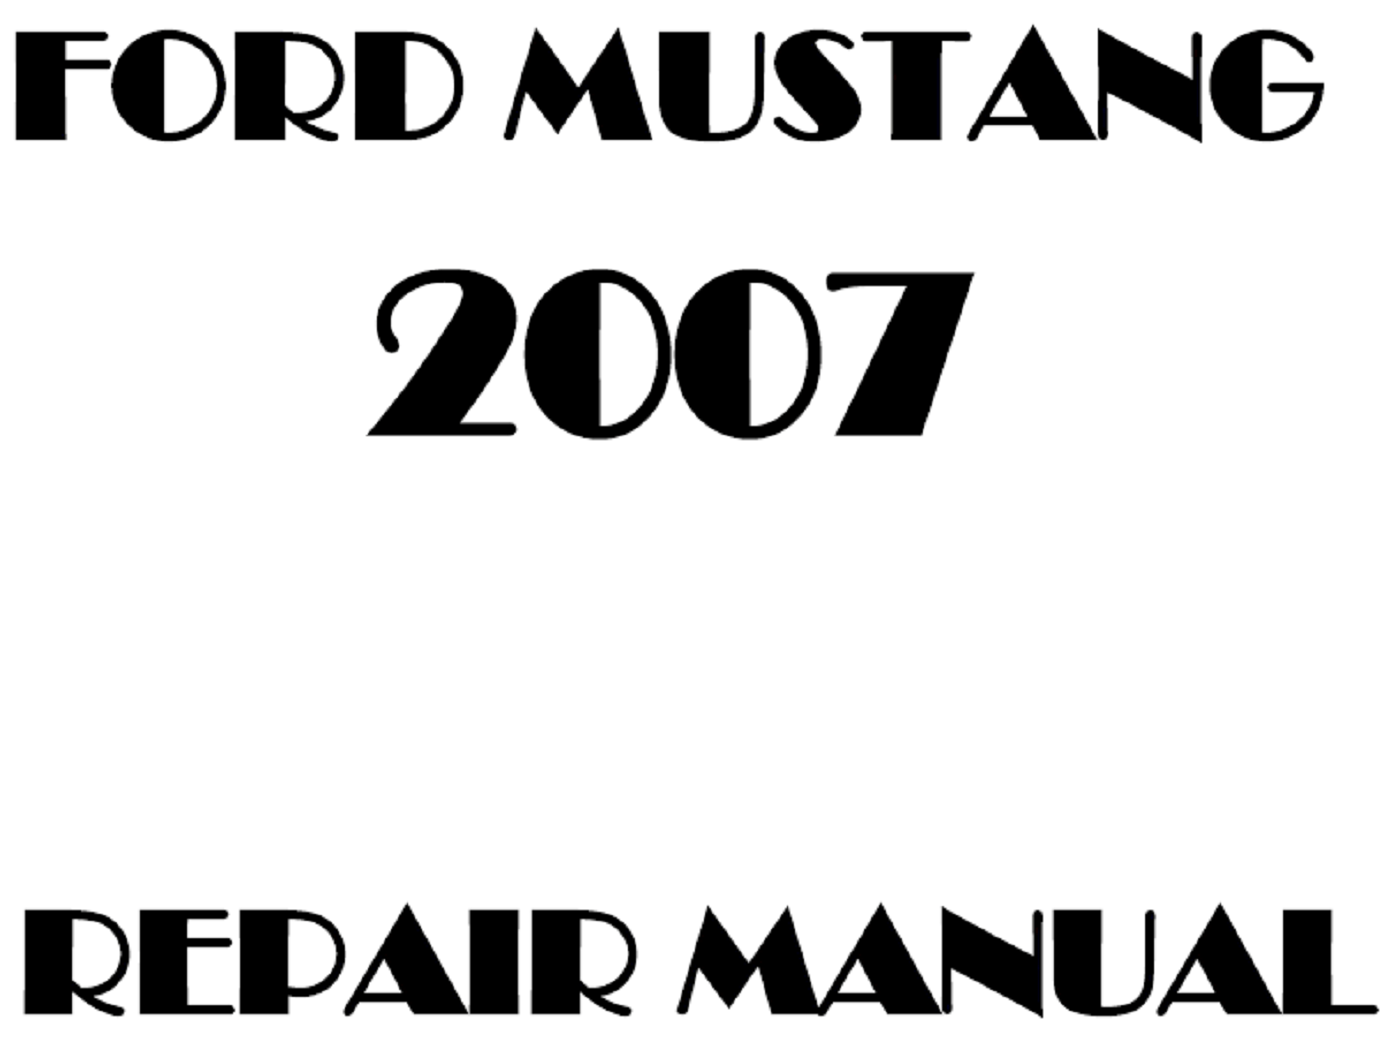 2007 Ford Mustang repair manual